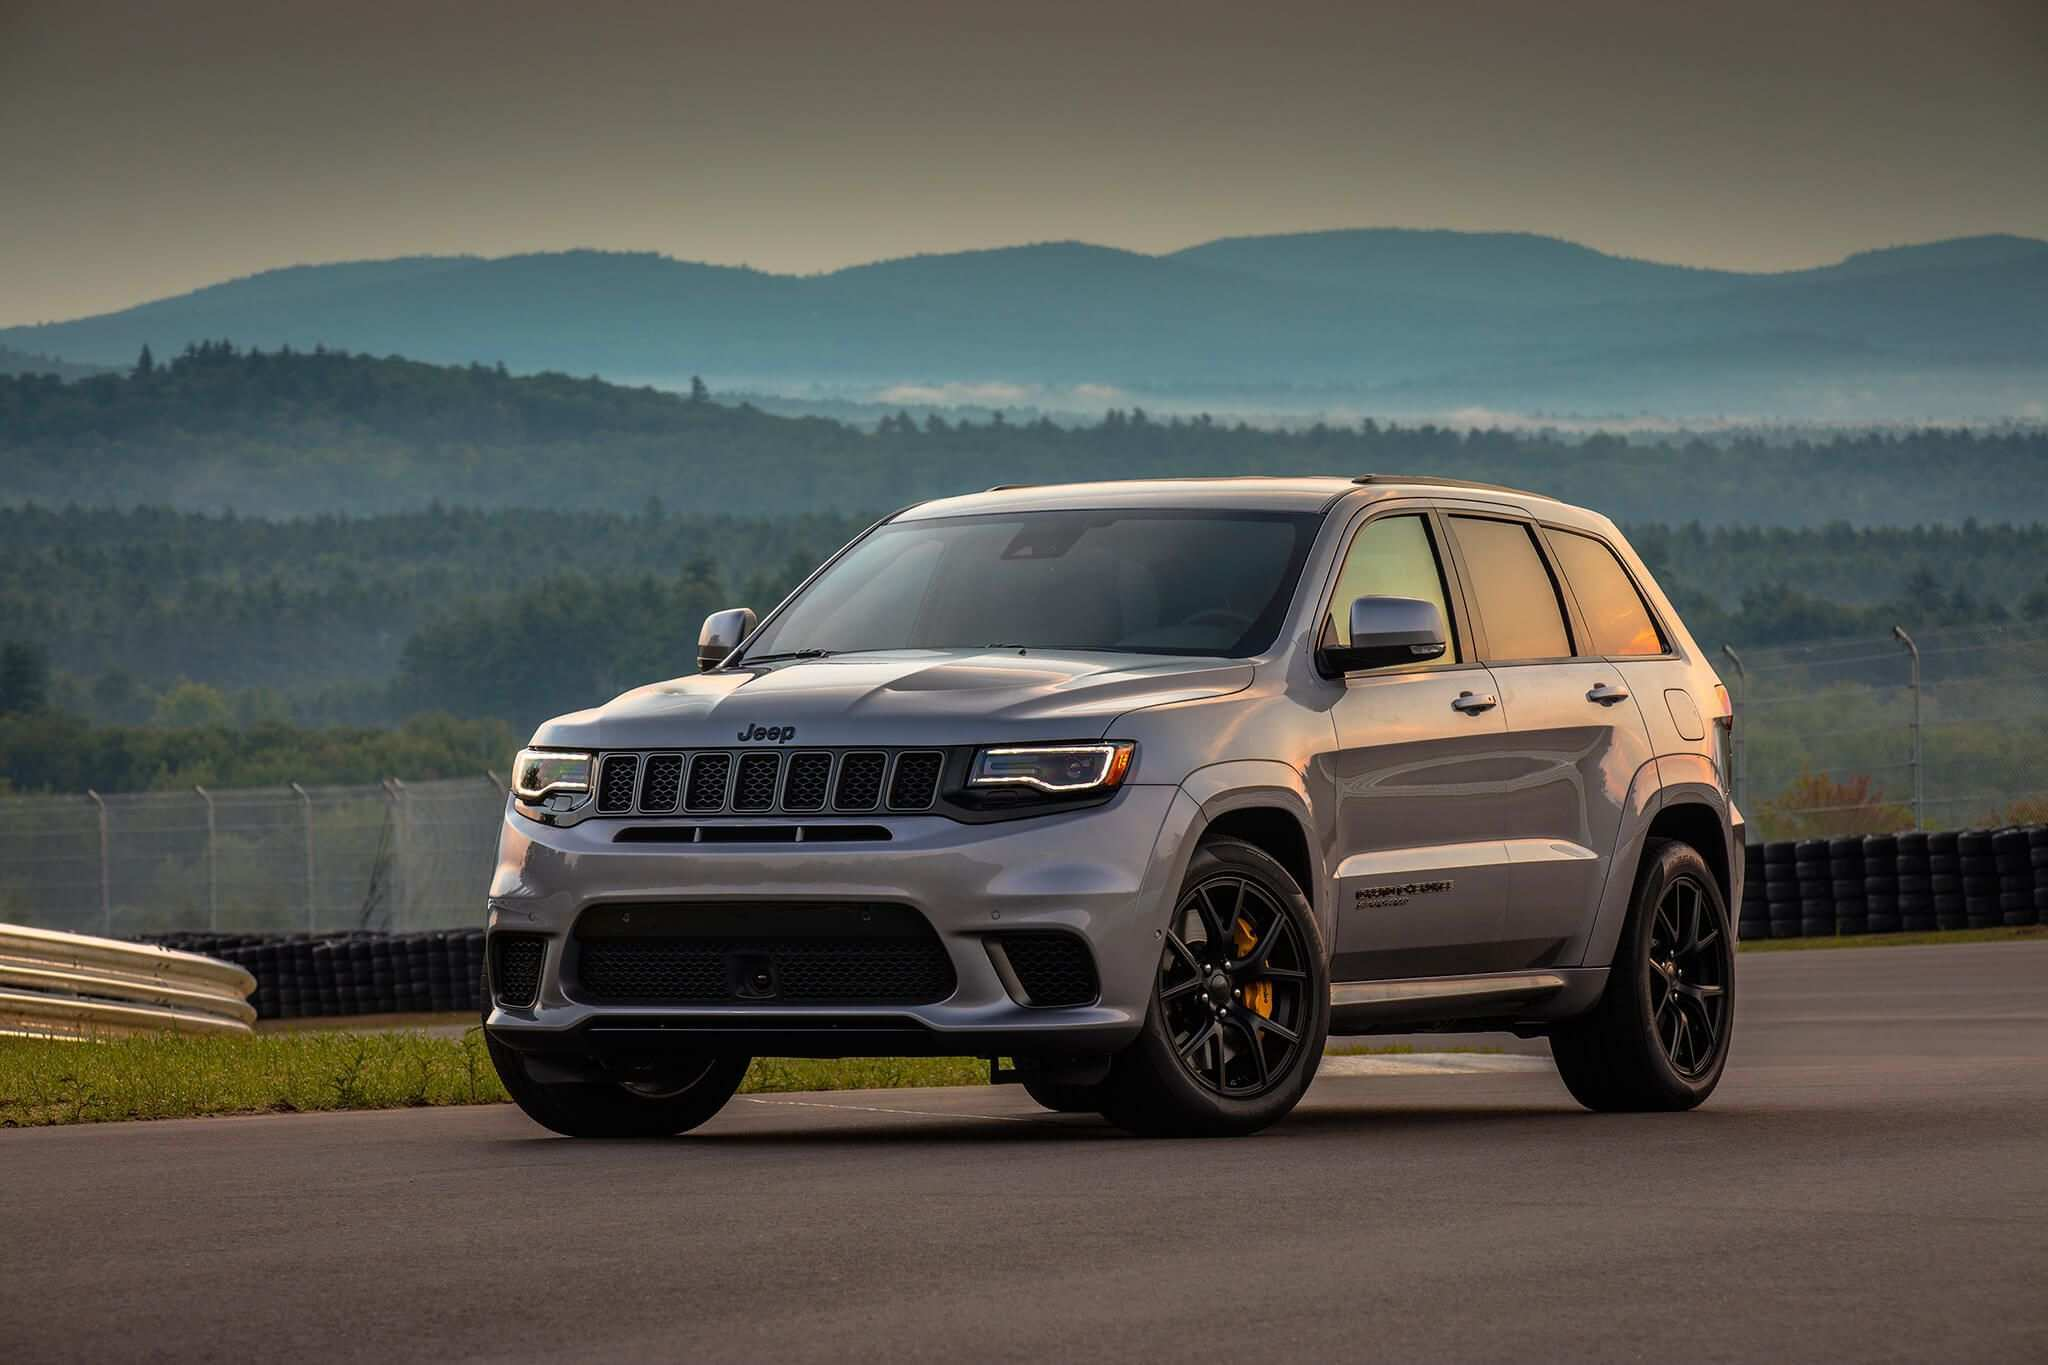 73 Concept of 2020 Jeep Diesel Exterior Pricing with 2020 Jeep Diesel Exterior